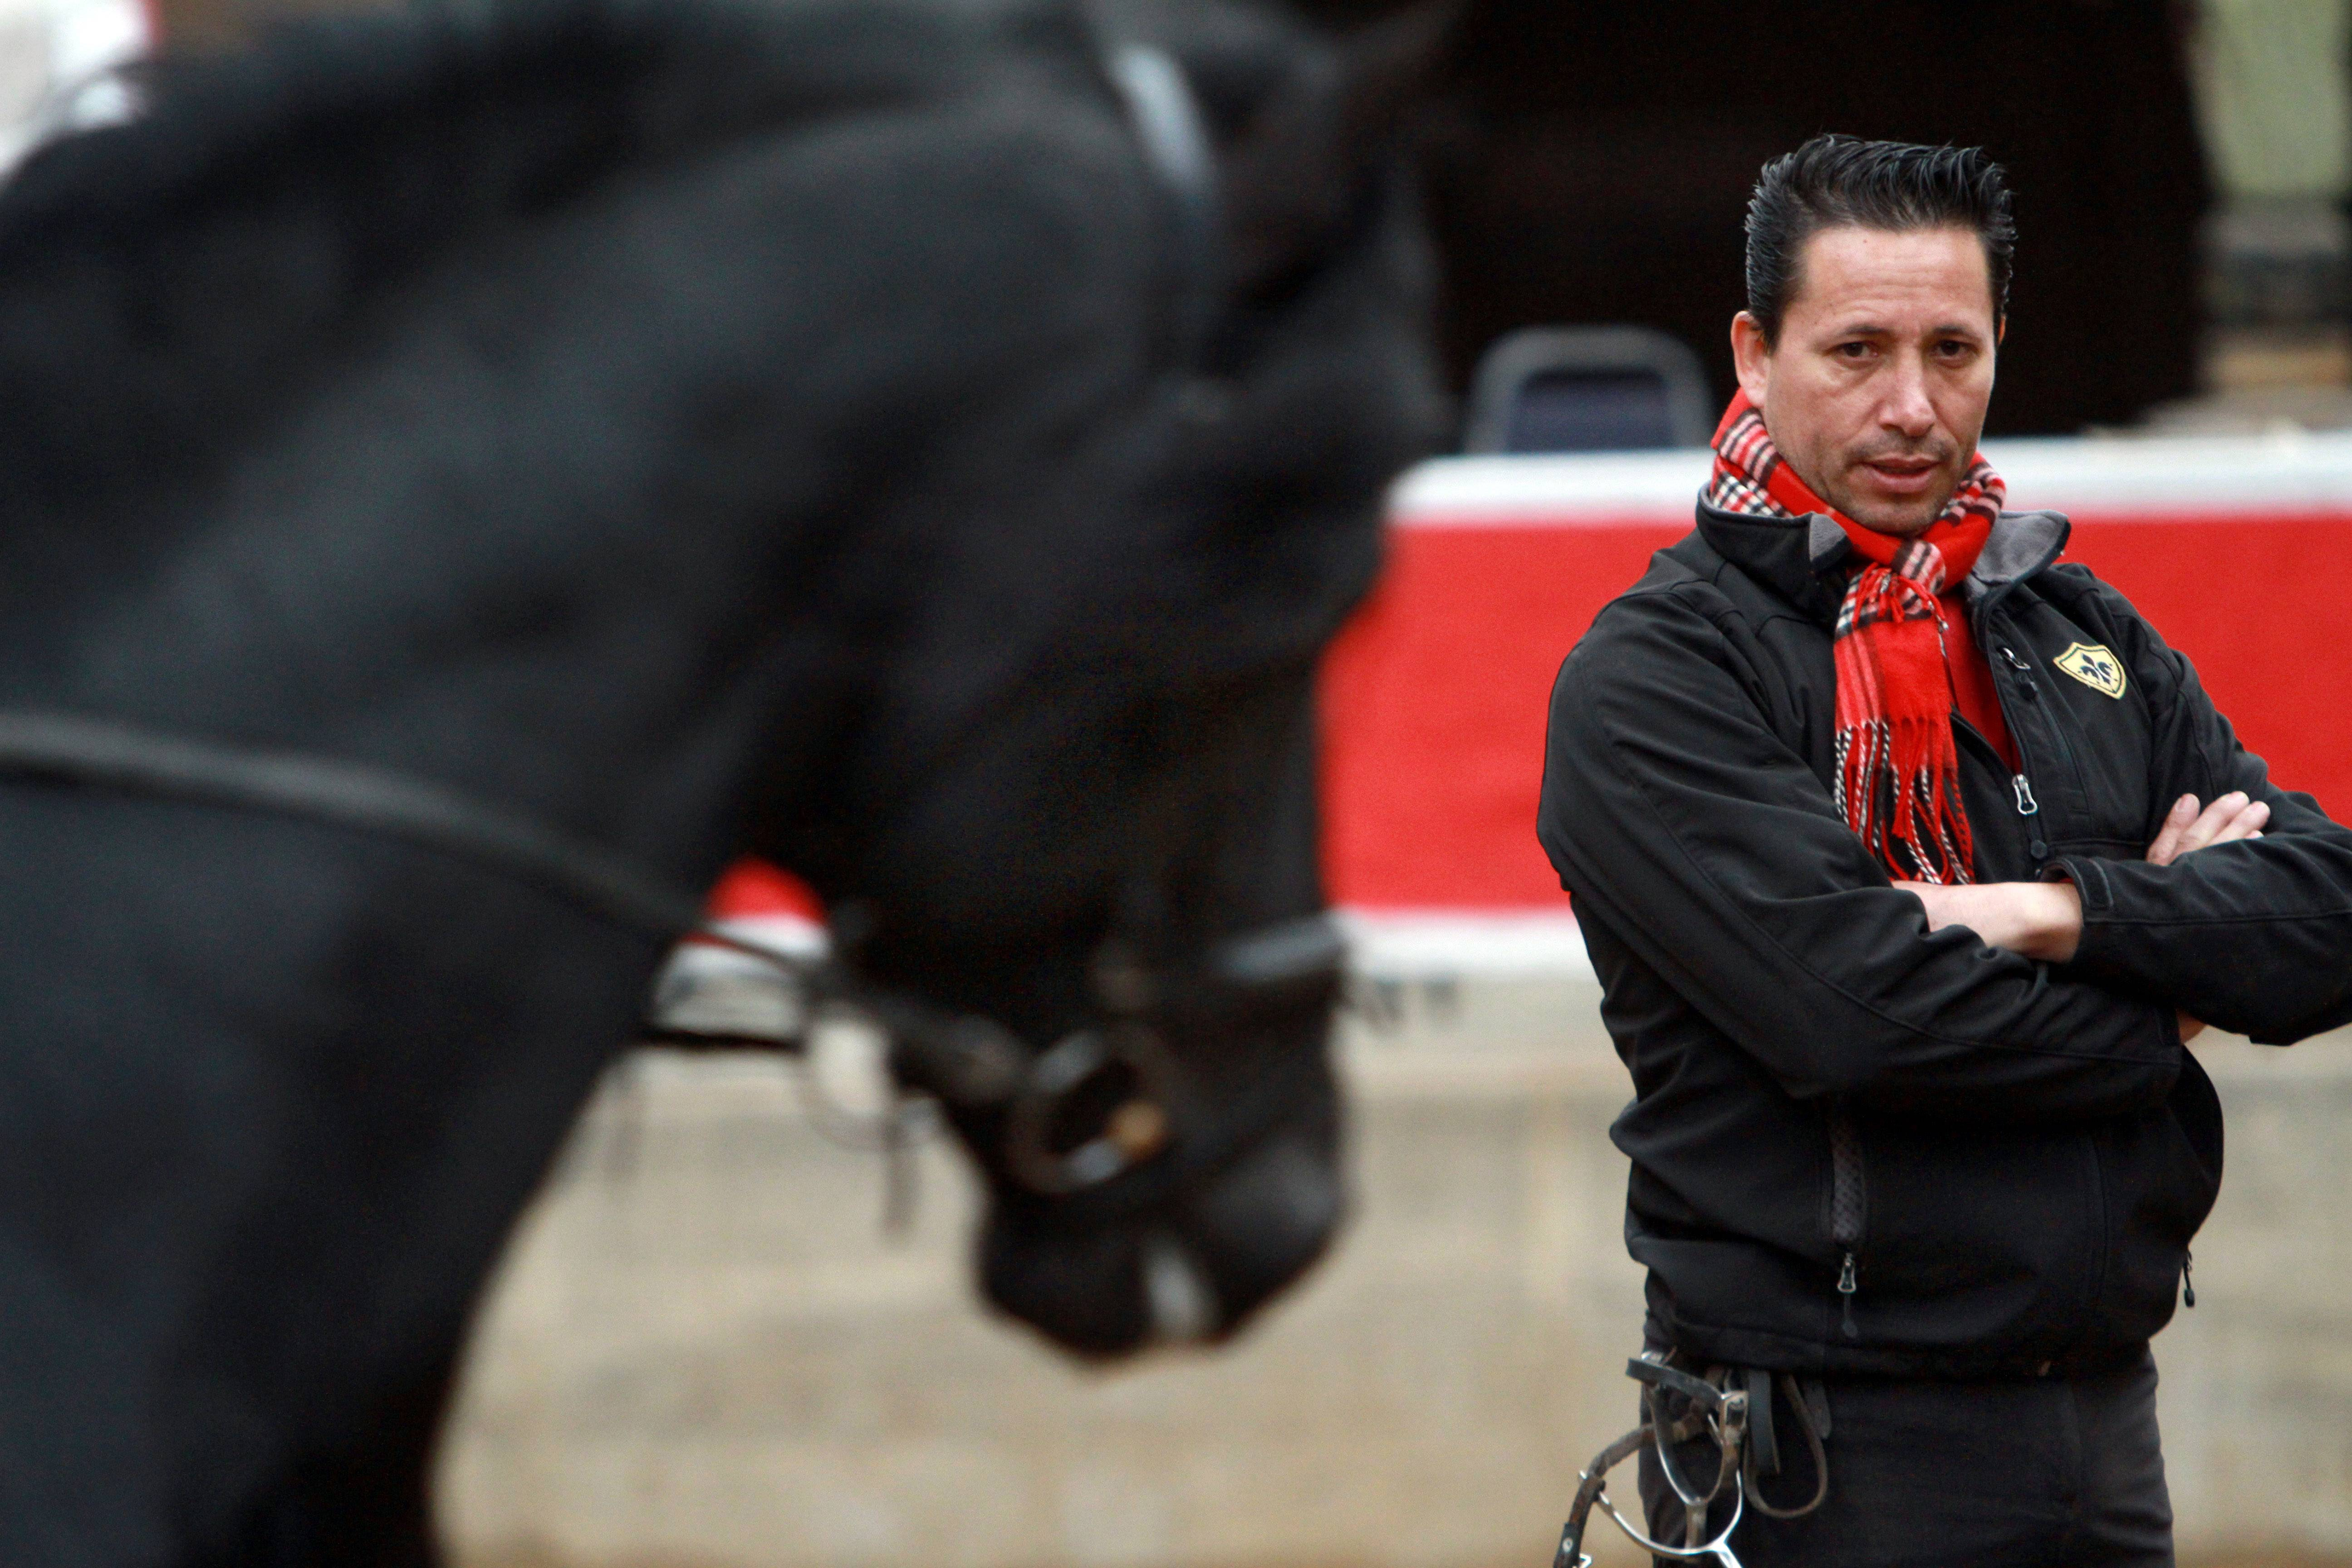 Mario Contreras of Elgin keeps a close eye on an Andalusian stallion at his training center in Gilberts.